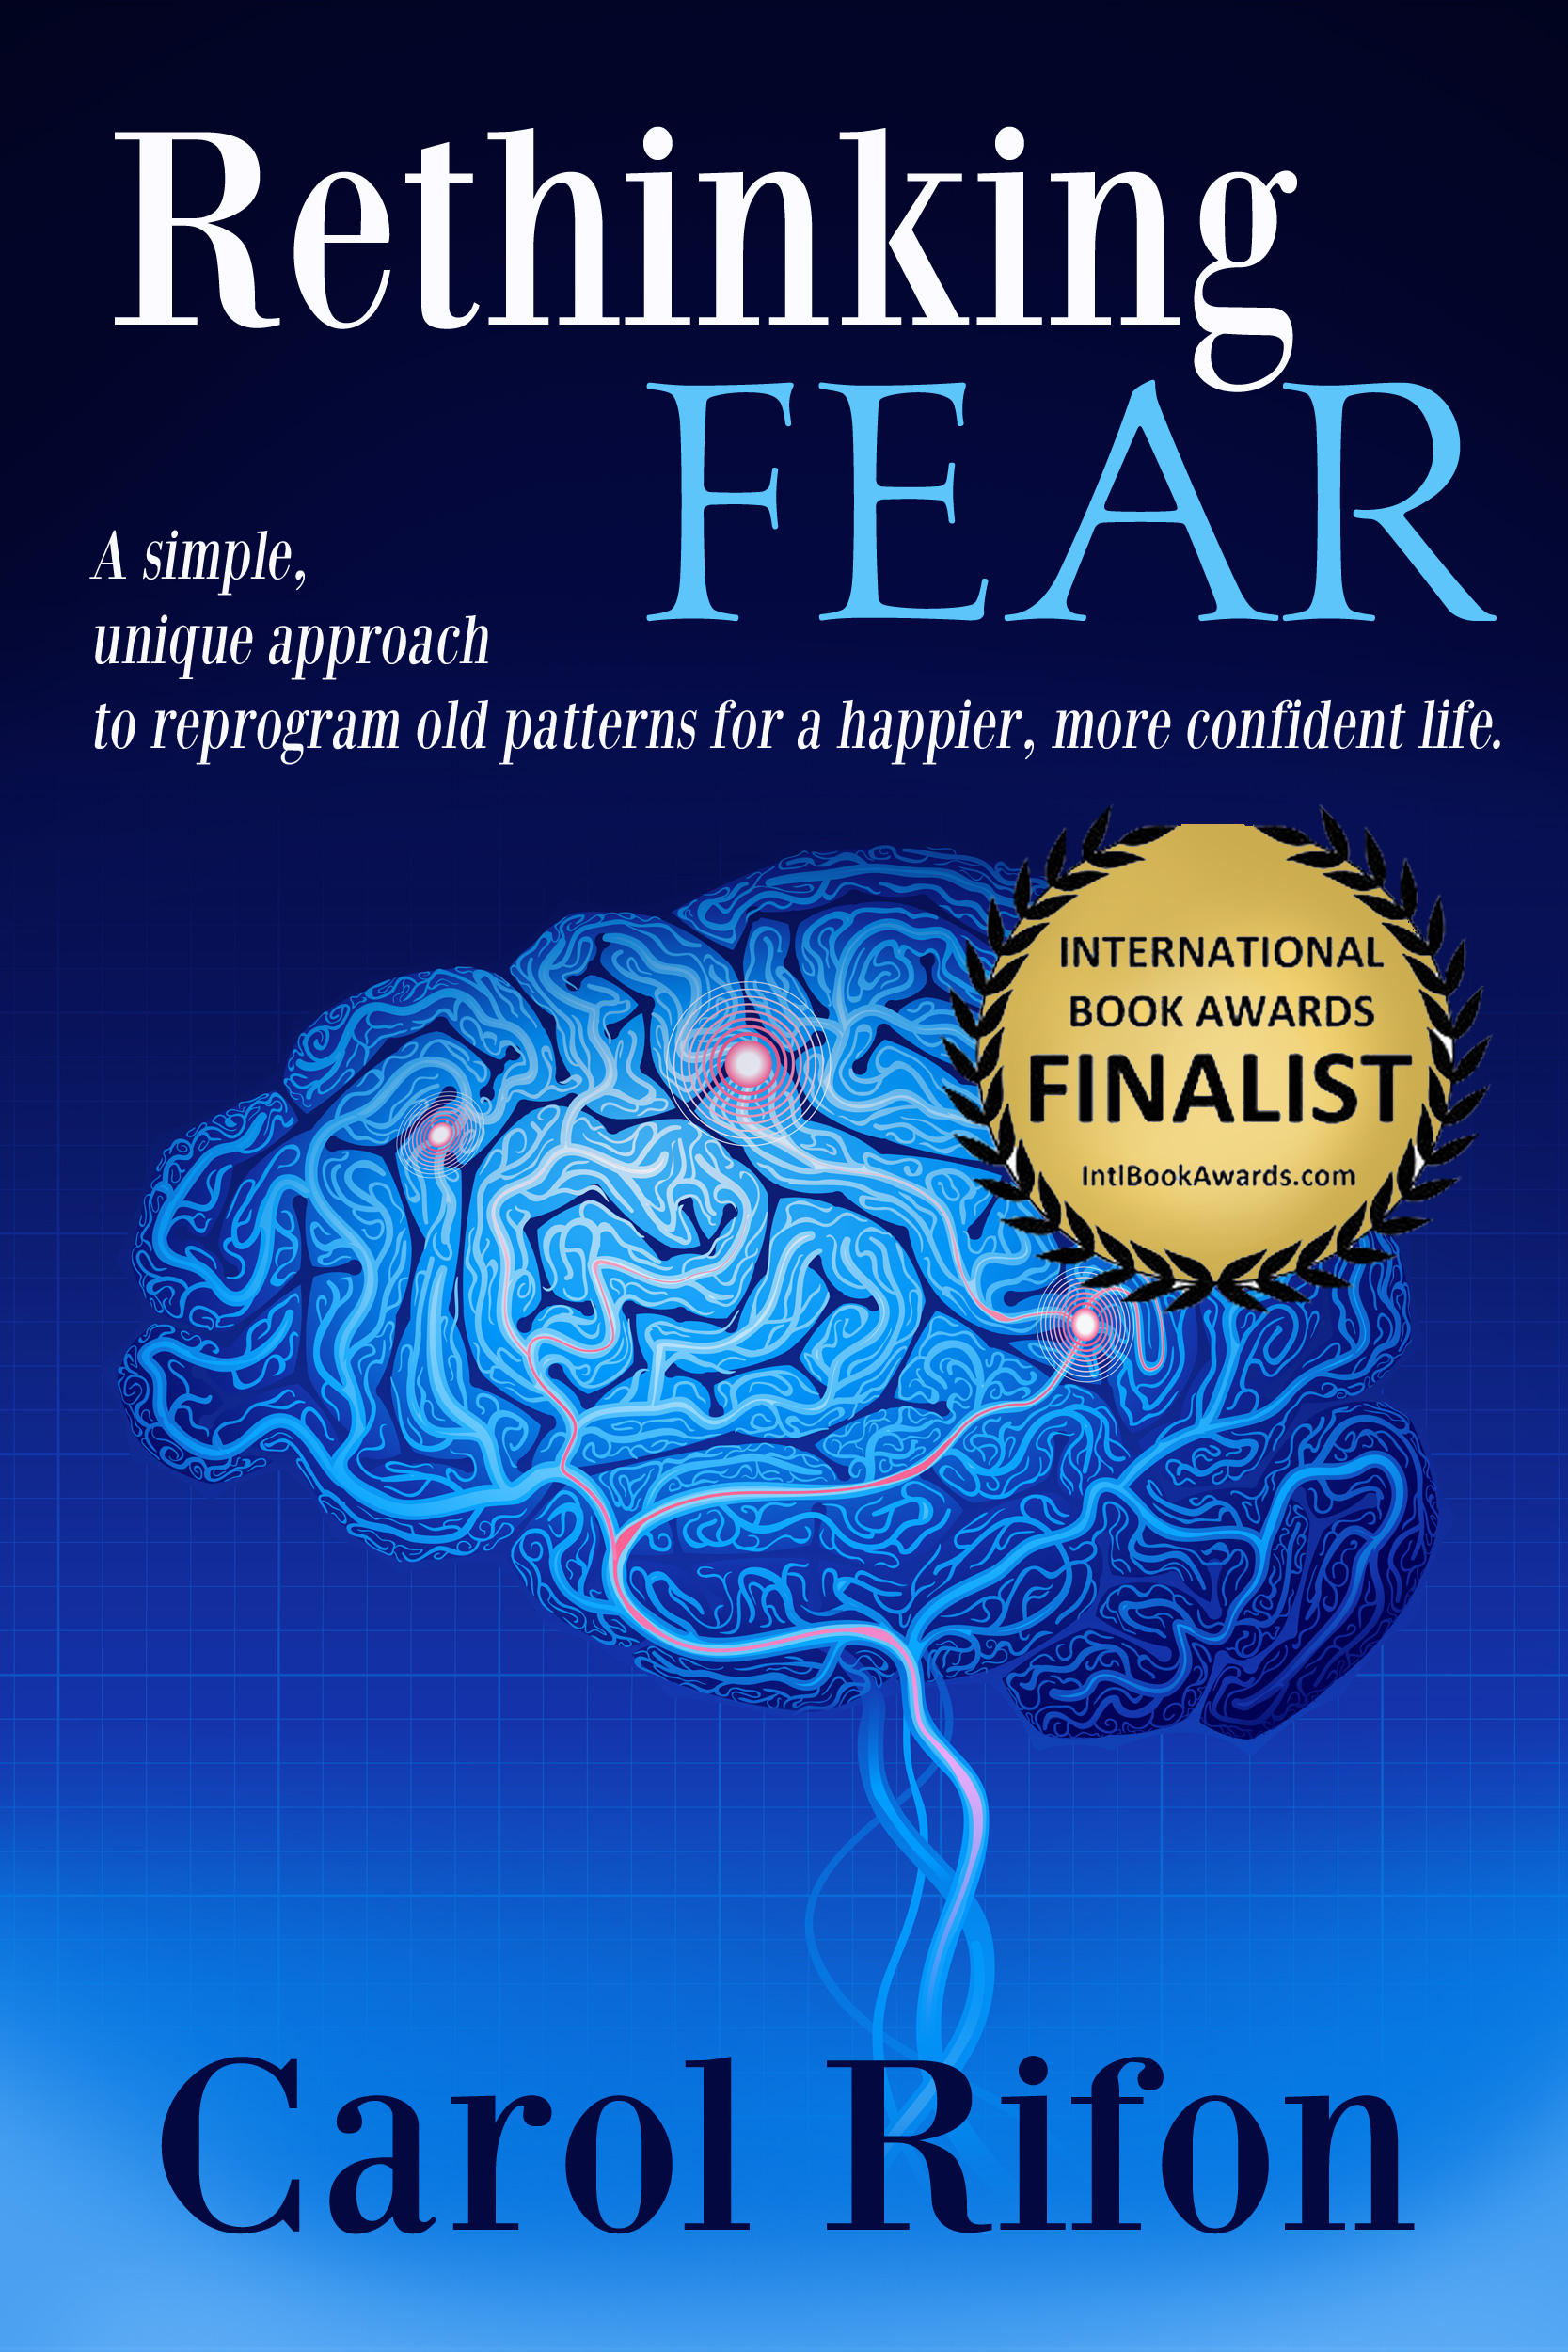 RethinkingFear-award2